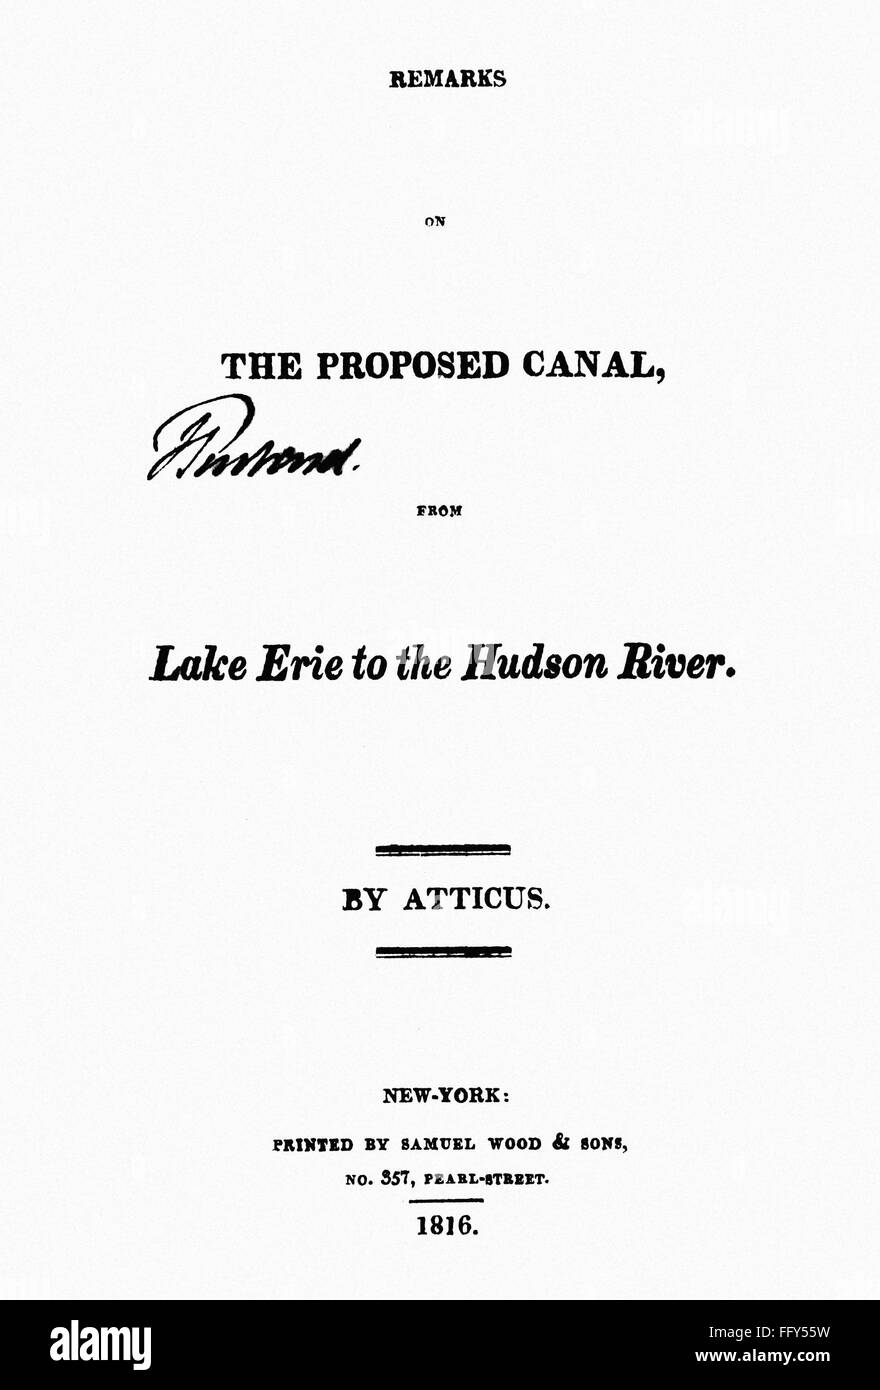 erie canal report 1816 ntitle page of a report by atticus pen ntitle page of a report by atticus pen